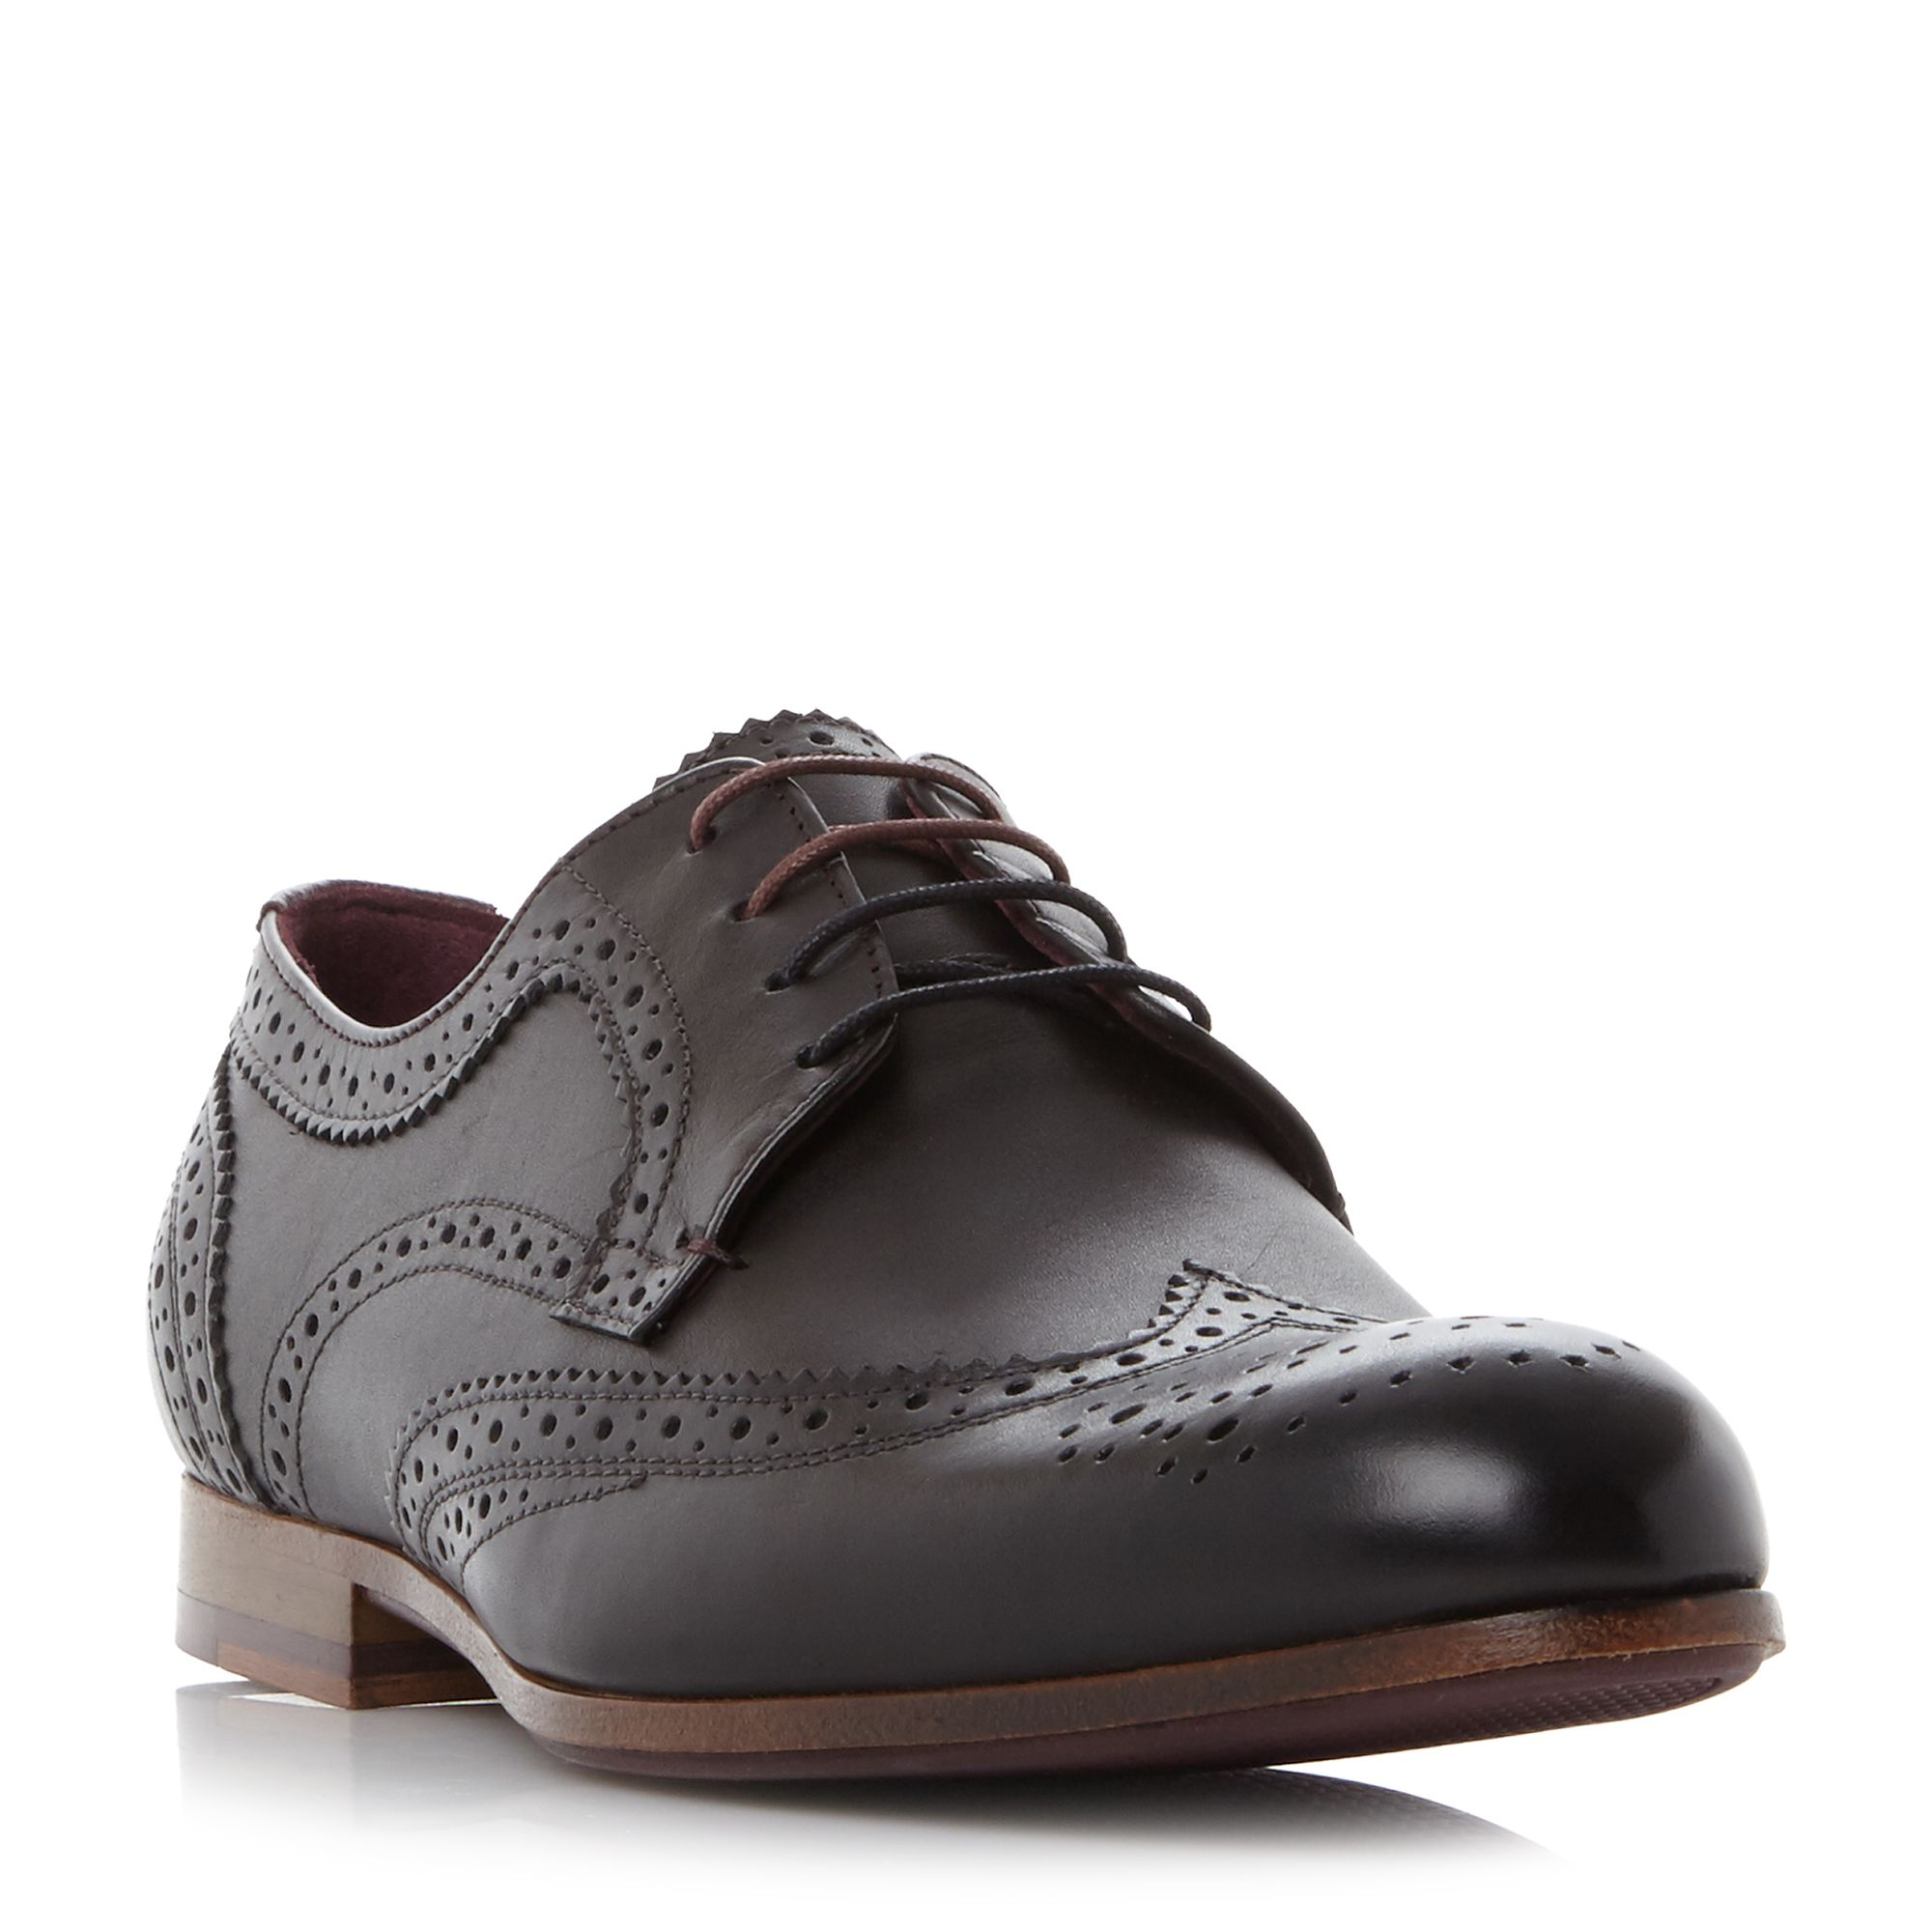 Ted Baker Granet Wingtip Brogue Shoes Black